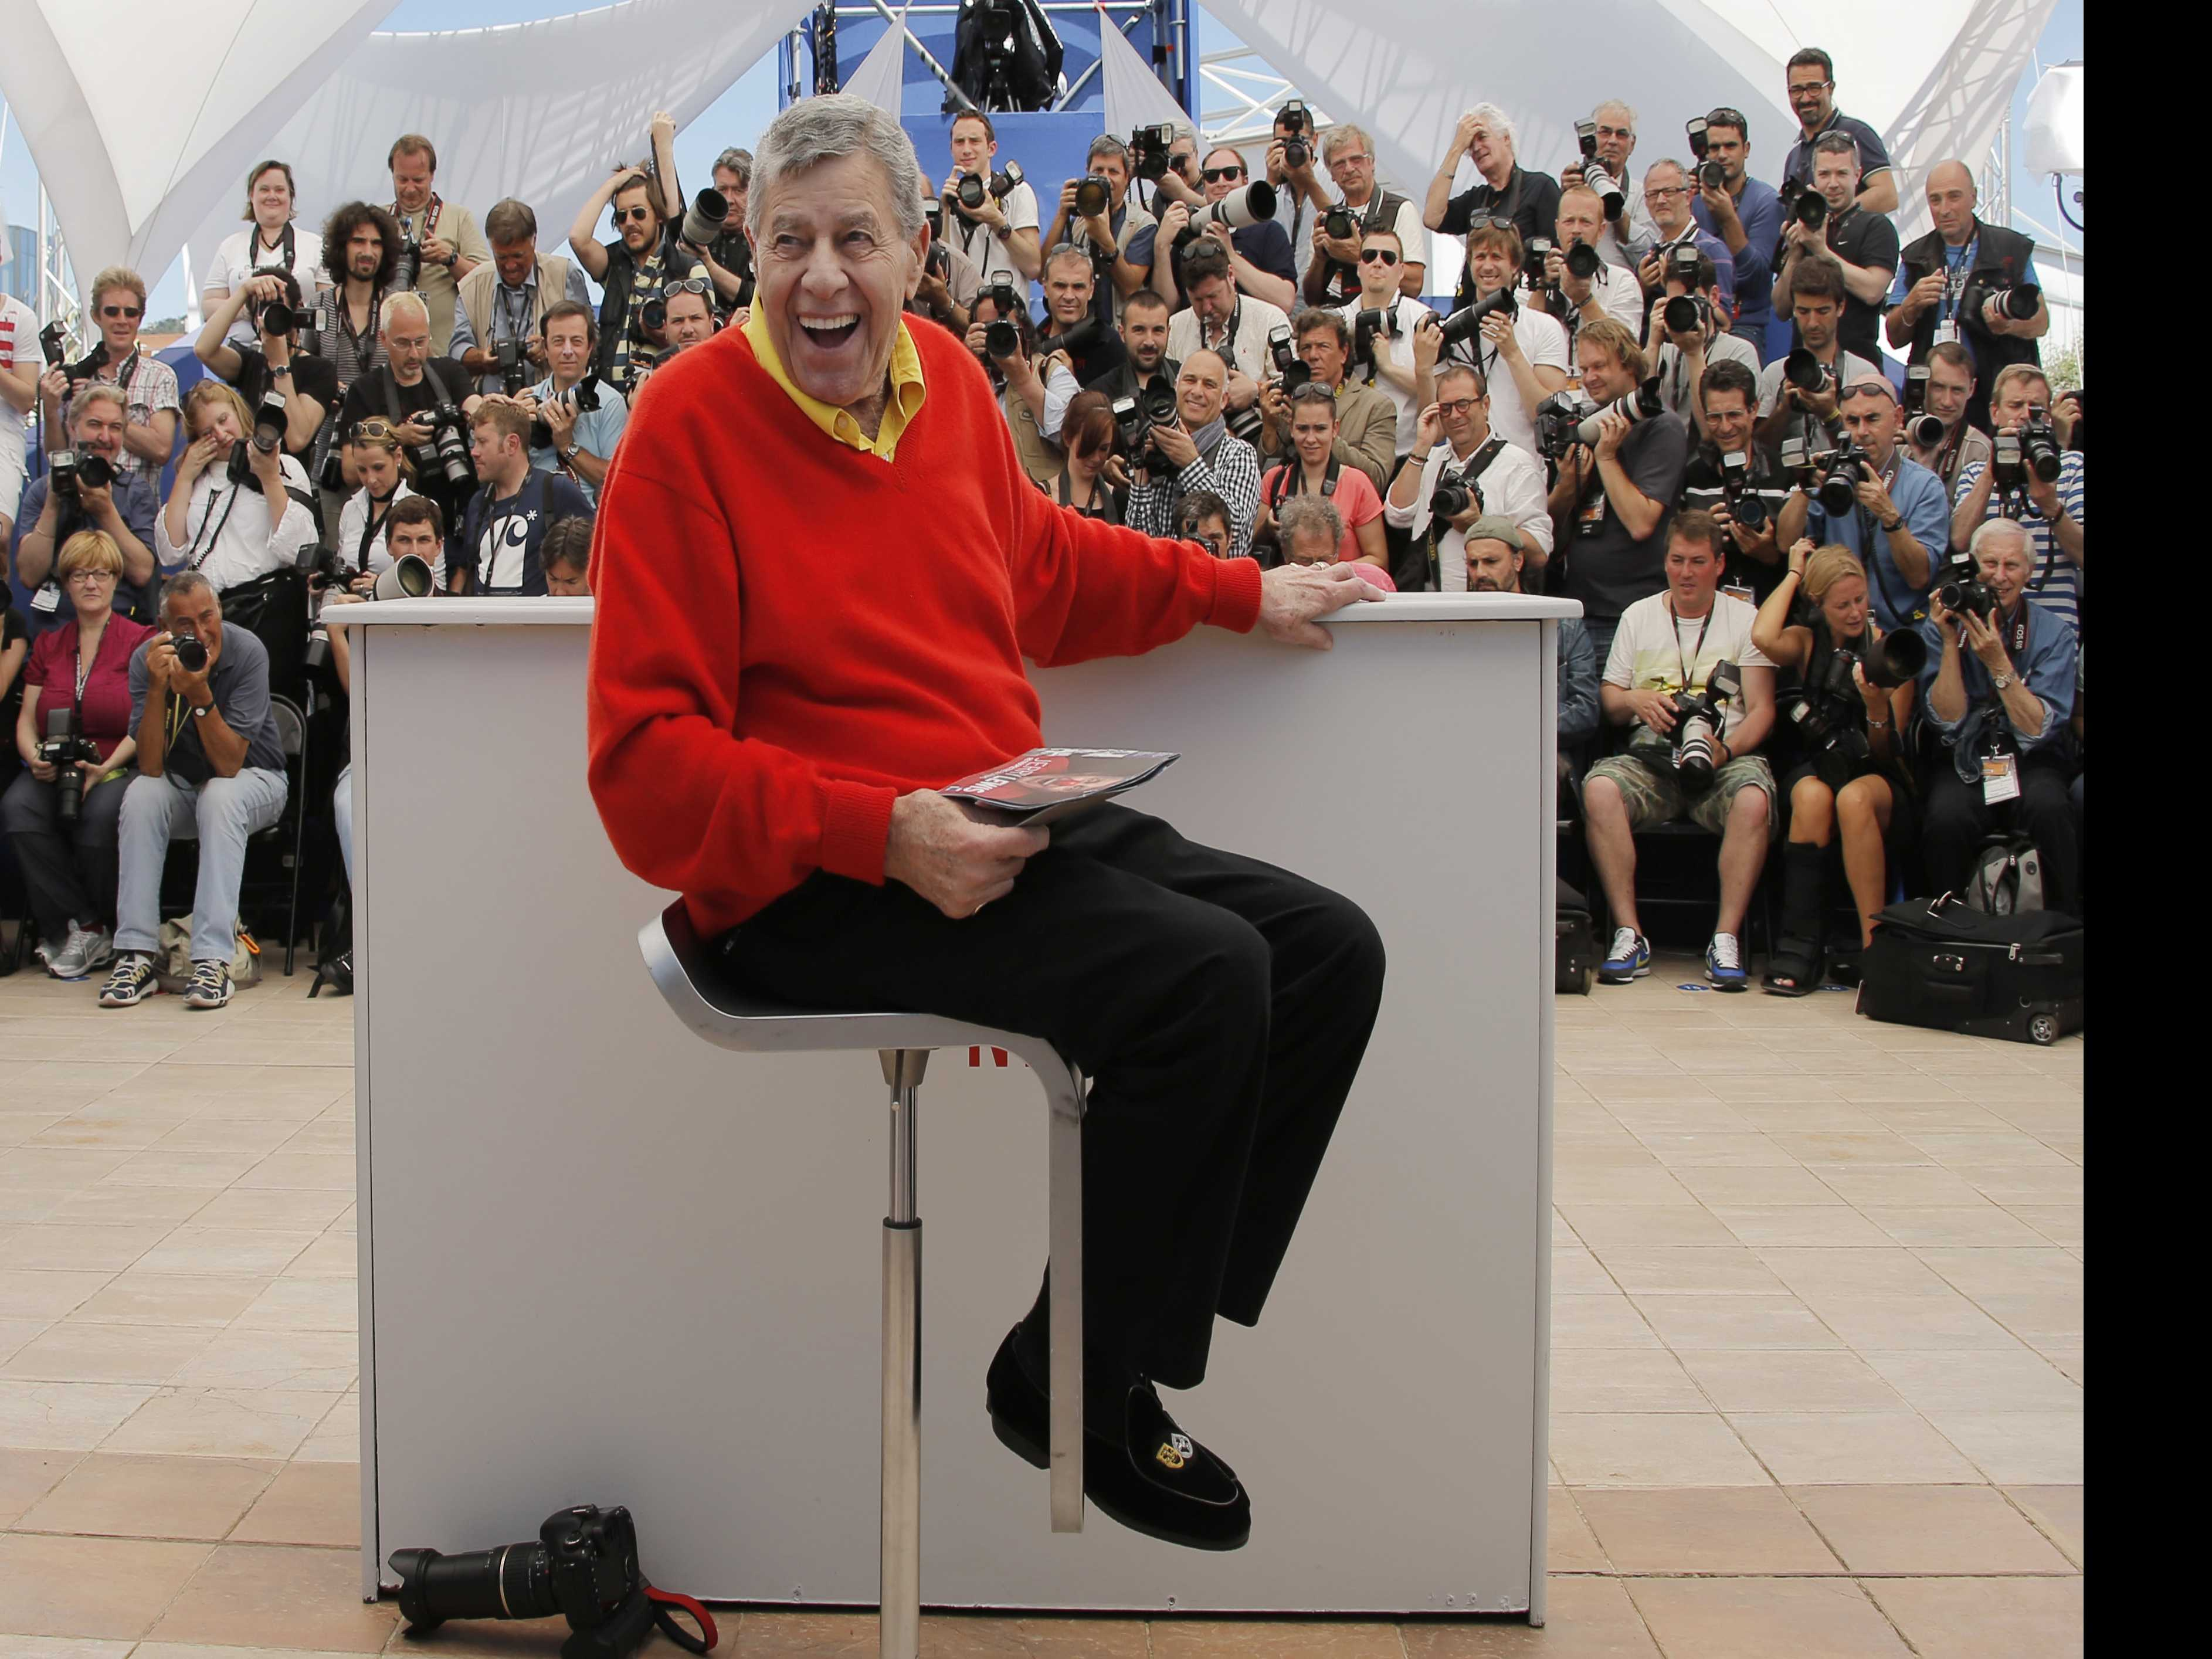 Watches, Wardrobe of Comedian Jerry Lewis to be Auctioned